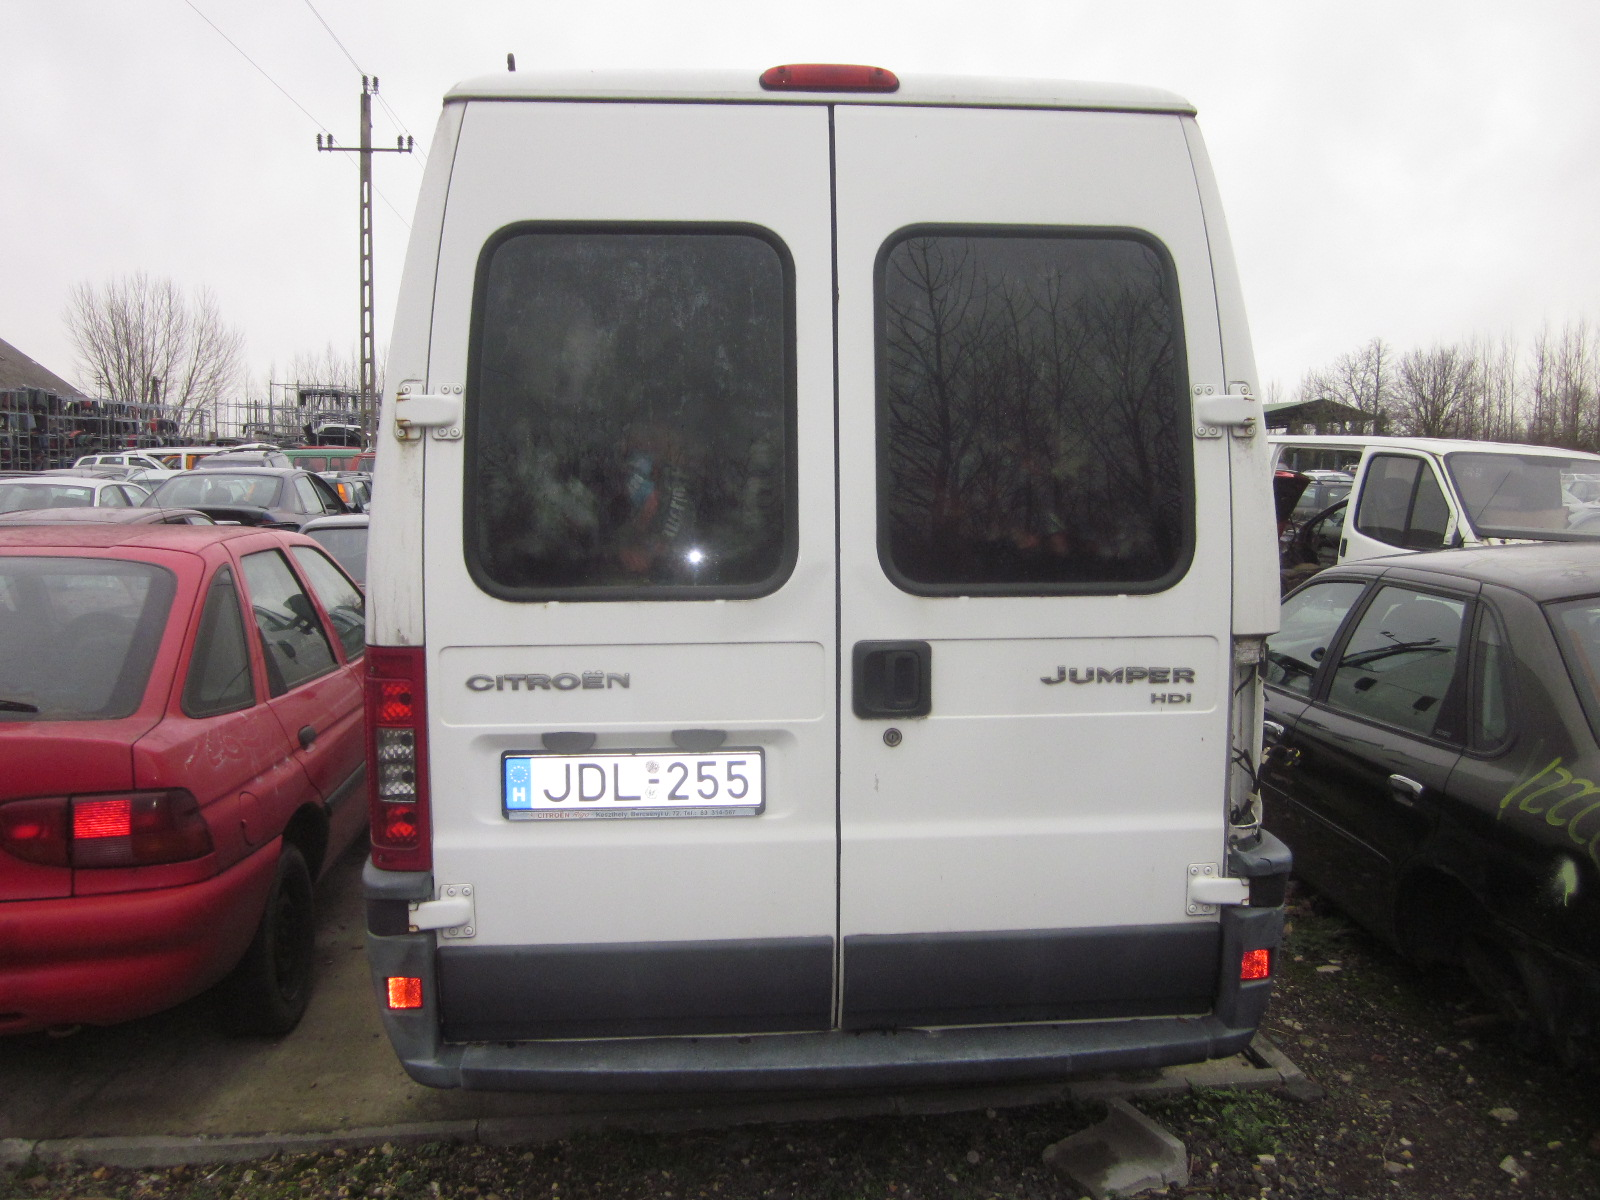 Citroen Jumper 33LH 2004 photo - 7